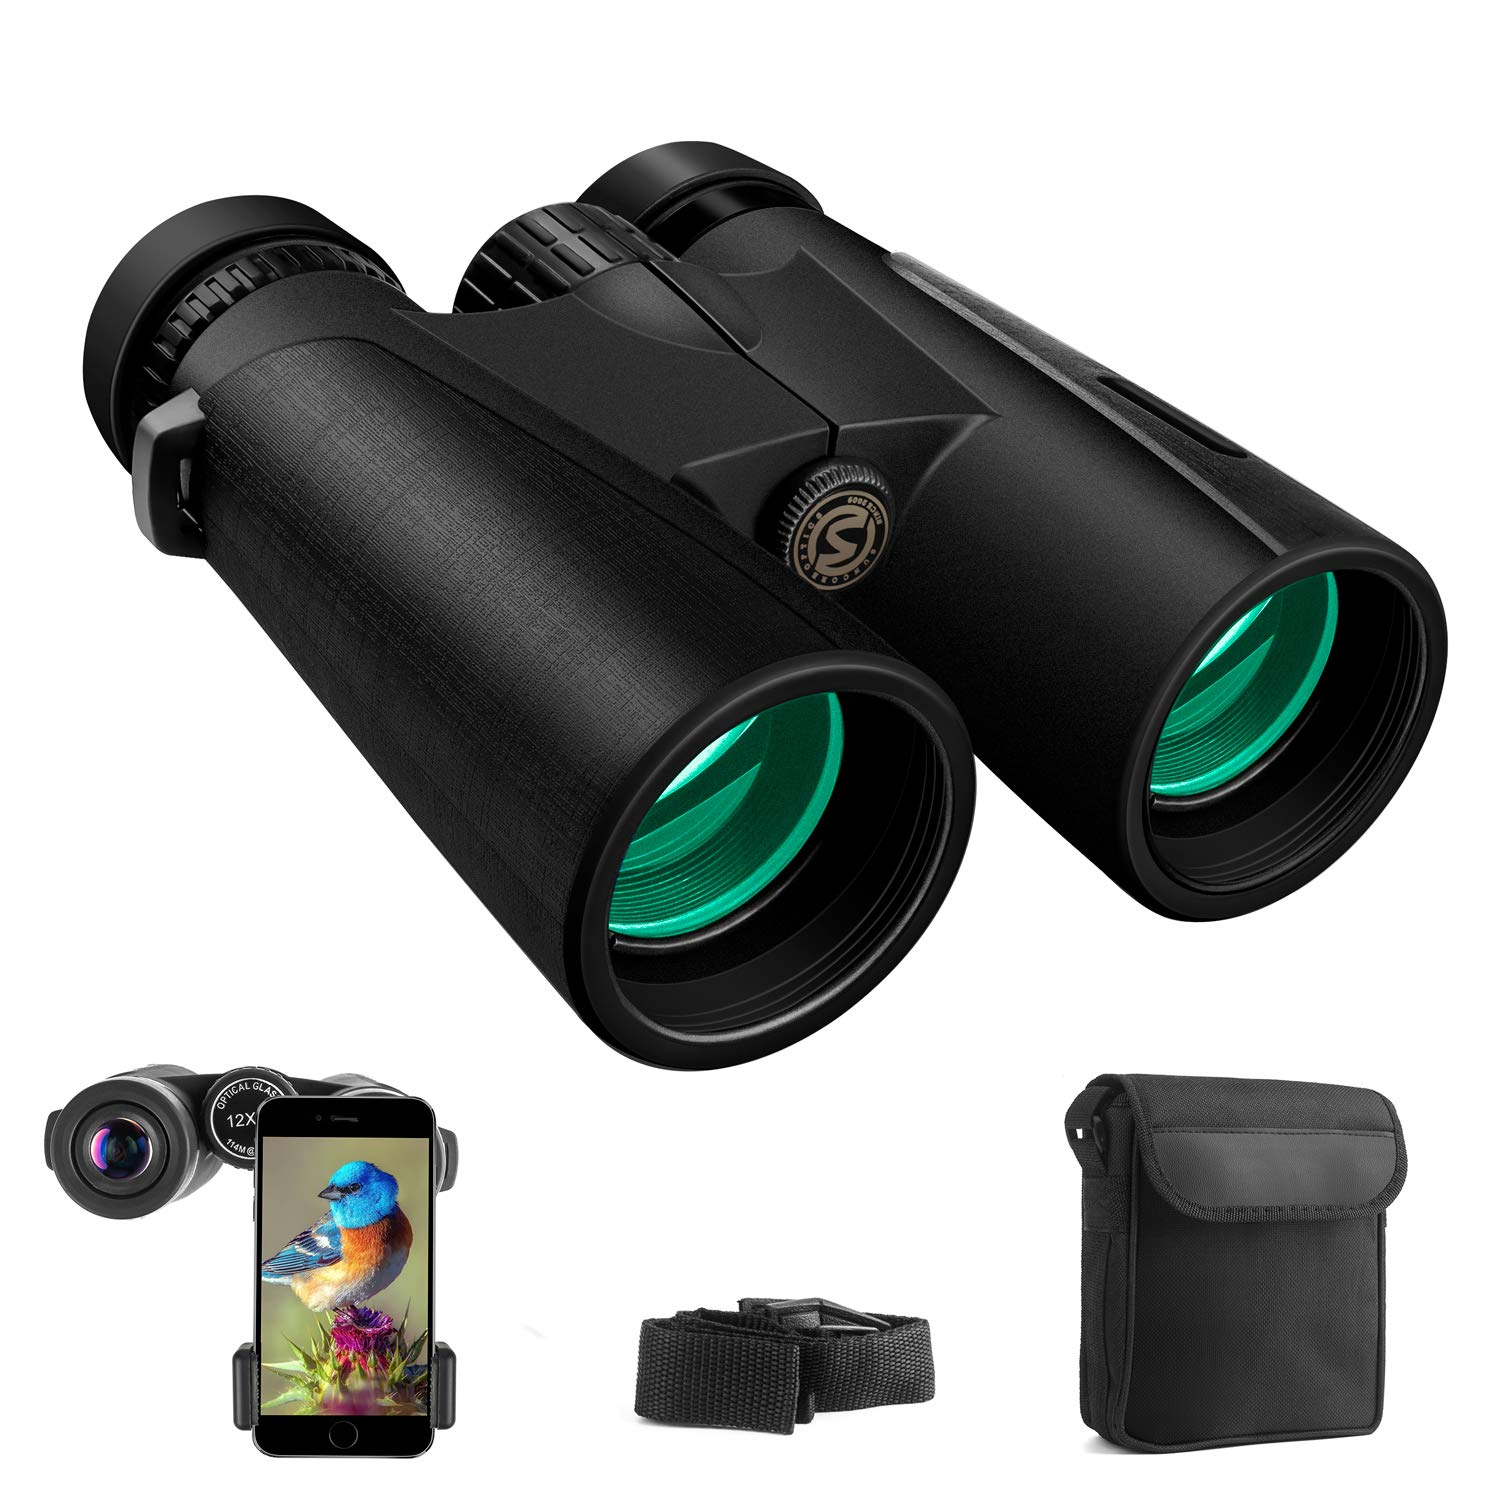 Cayzor 12x42 Binoculars for Adults Compact HD Clear Weak Light Vision Bird Watching - Professional for Travel Stargazing Hunting Concerts Sports - BAK4 Prism FMC Lens Phone Mount Strap Carrying Bag by Cayzor